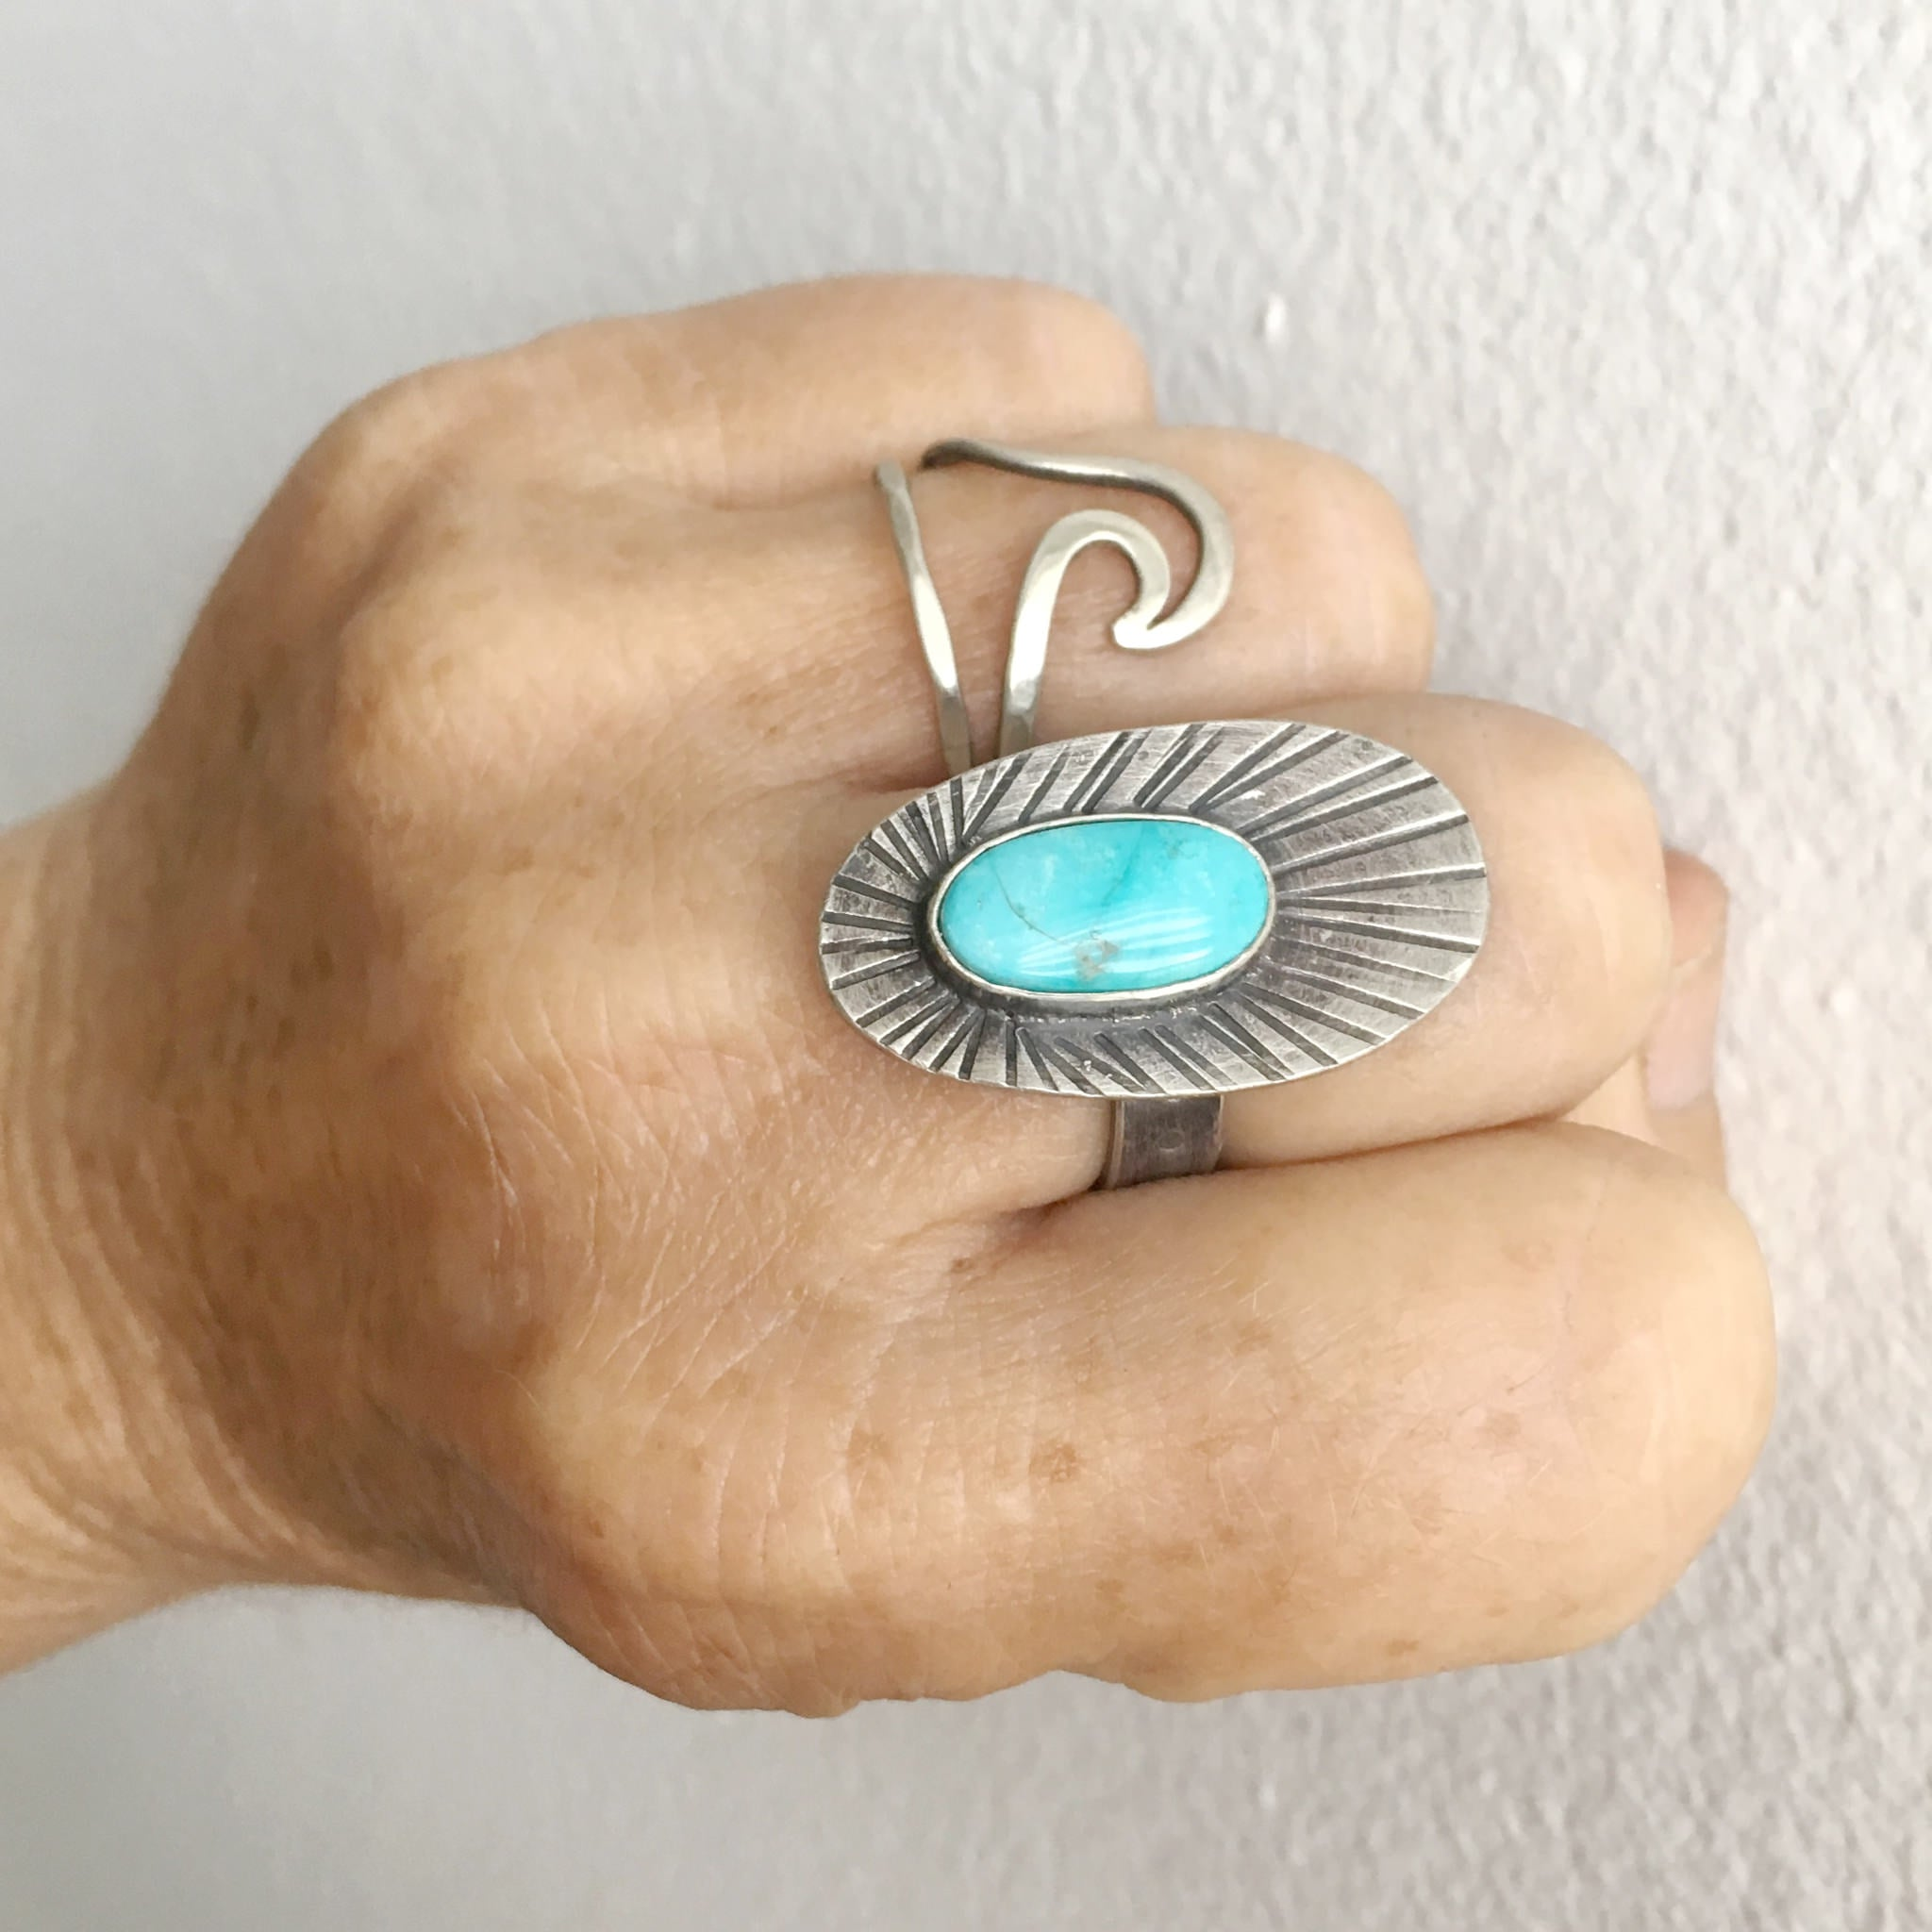 Fins and Feathers Kingman Turquoise Ring Size 7.5